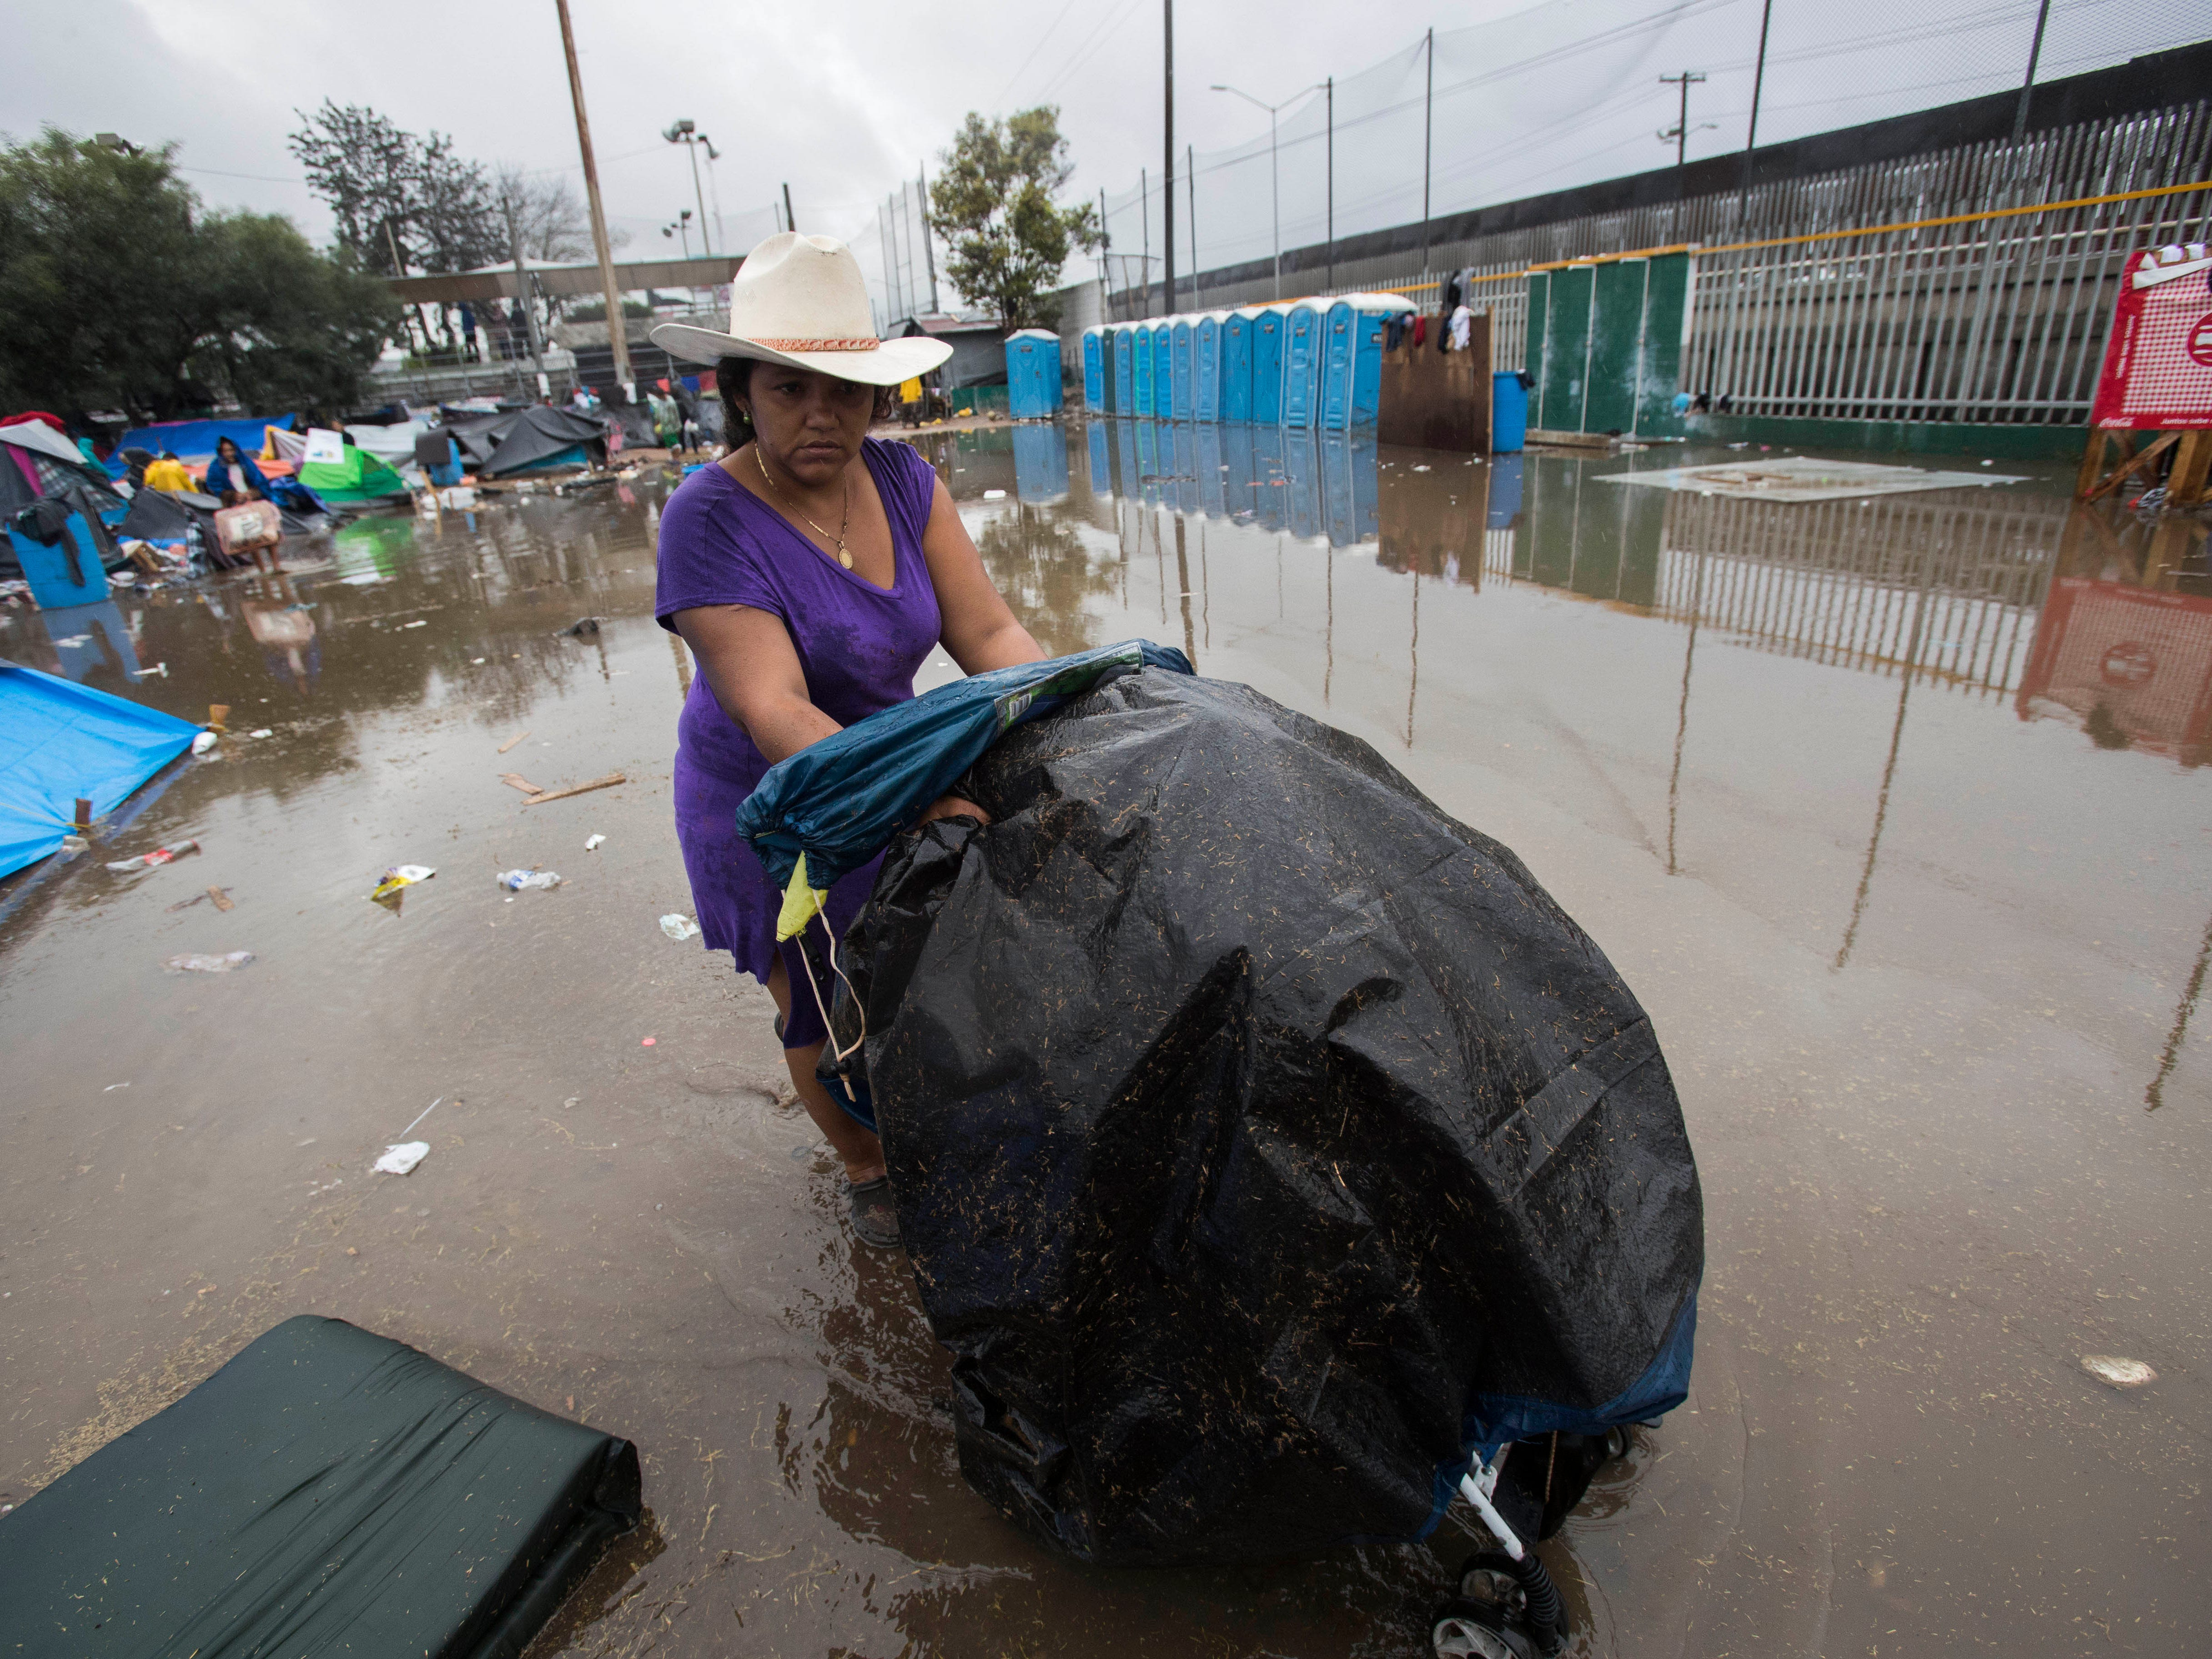 A migrant women carries her belongings through water using a baby carrier at the  Benito Juarez sports complex in Tijuana, Mexico on Nov. 29, 2018.